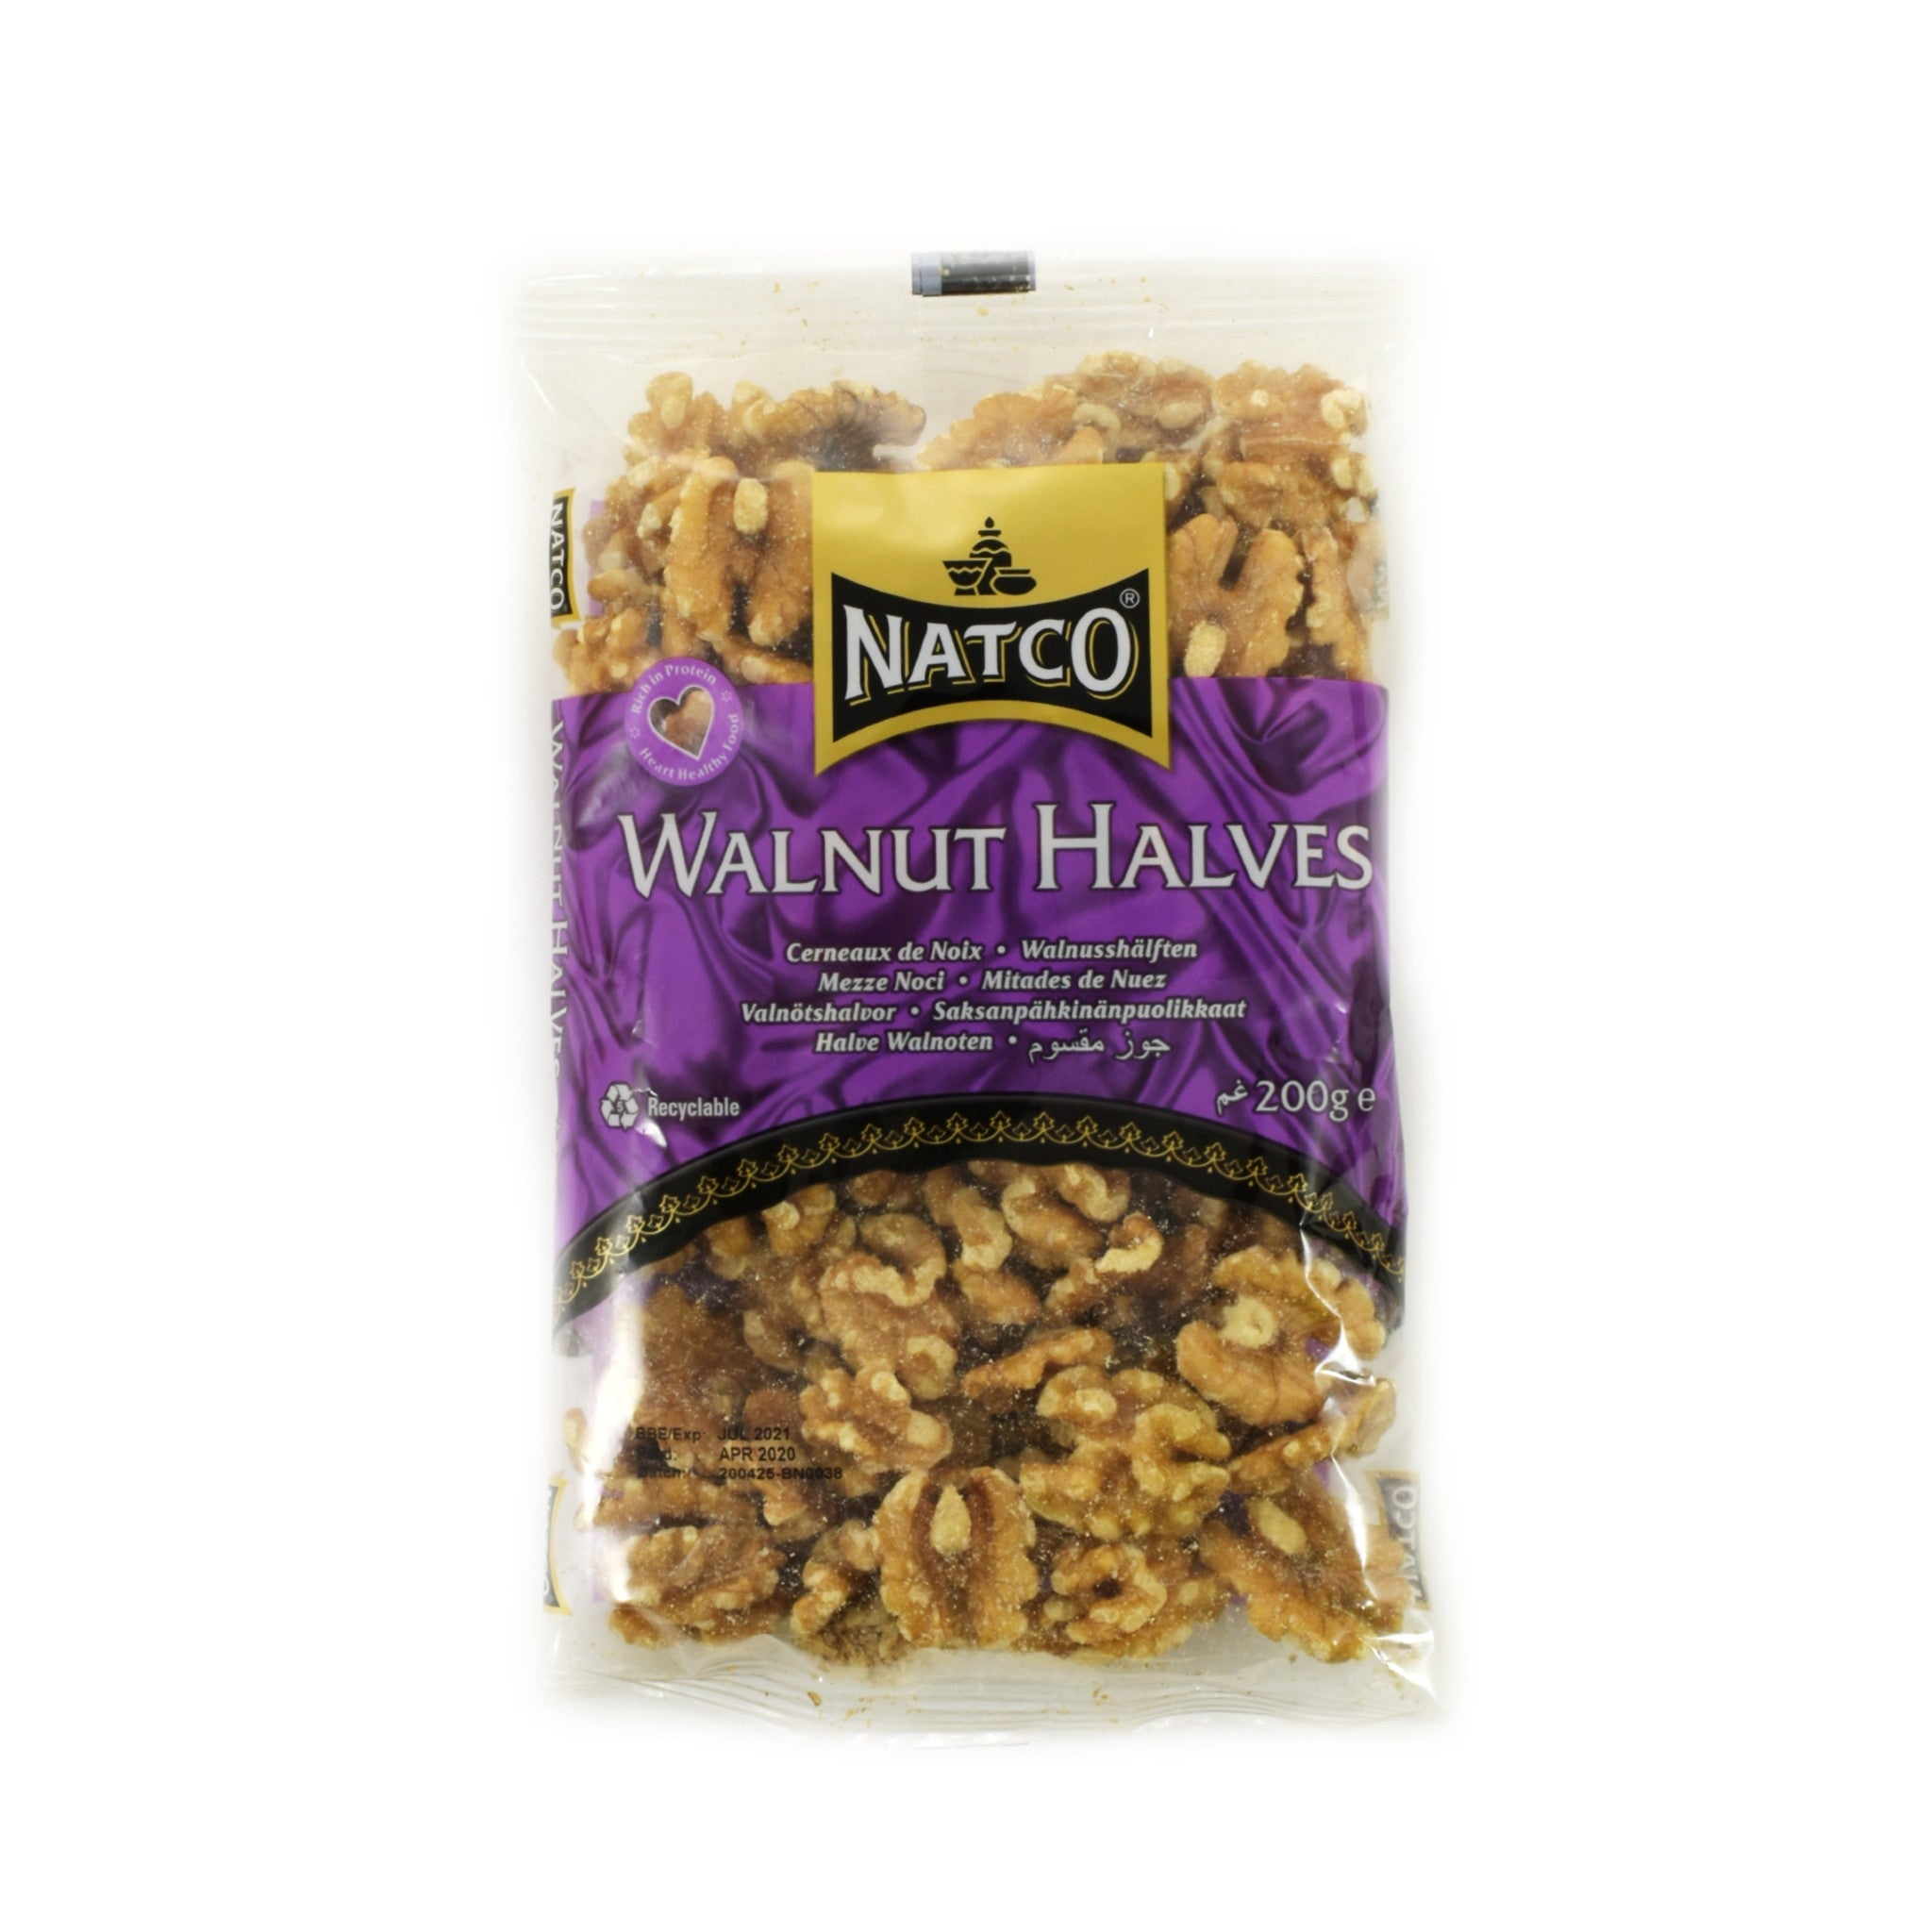 Natco Walnut Halves 200g